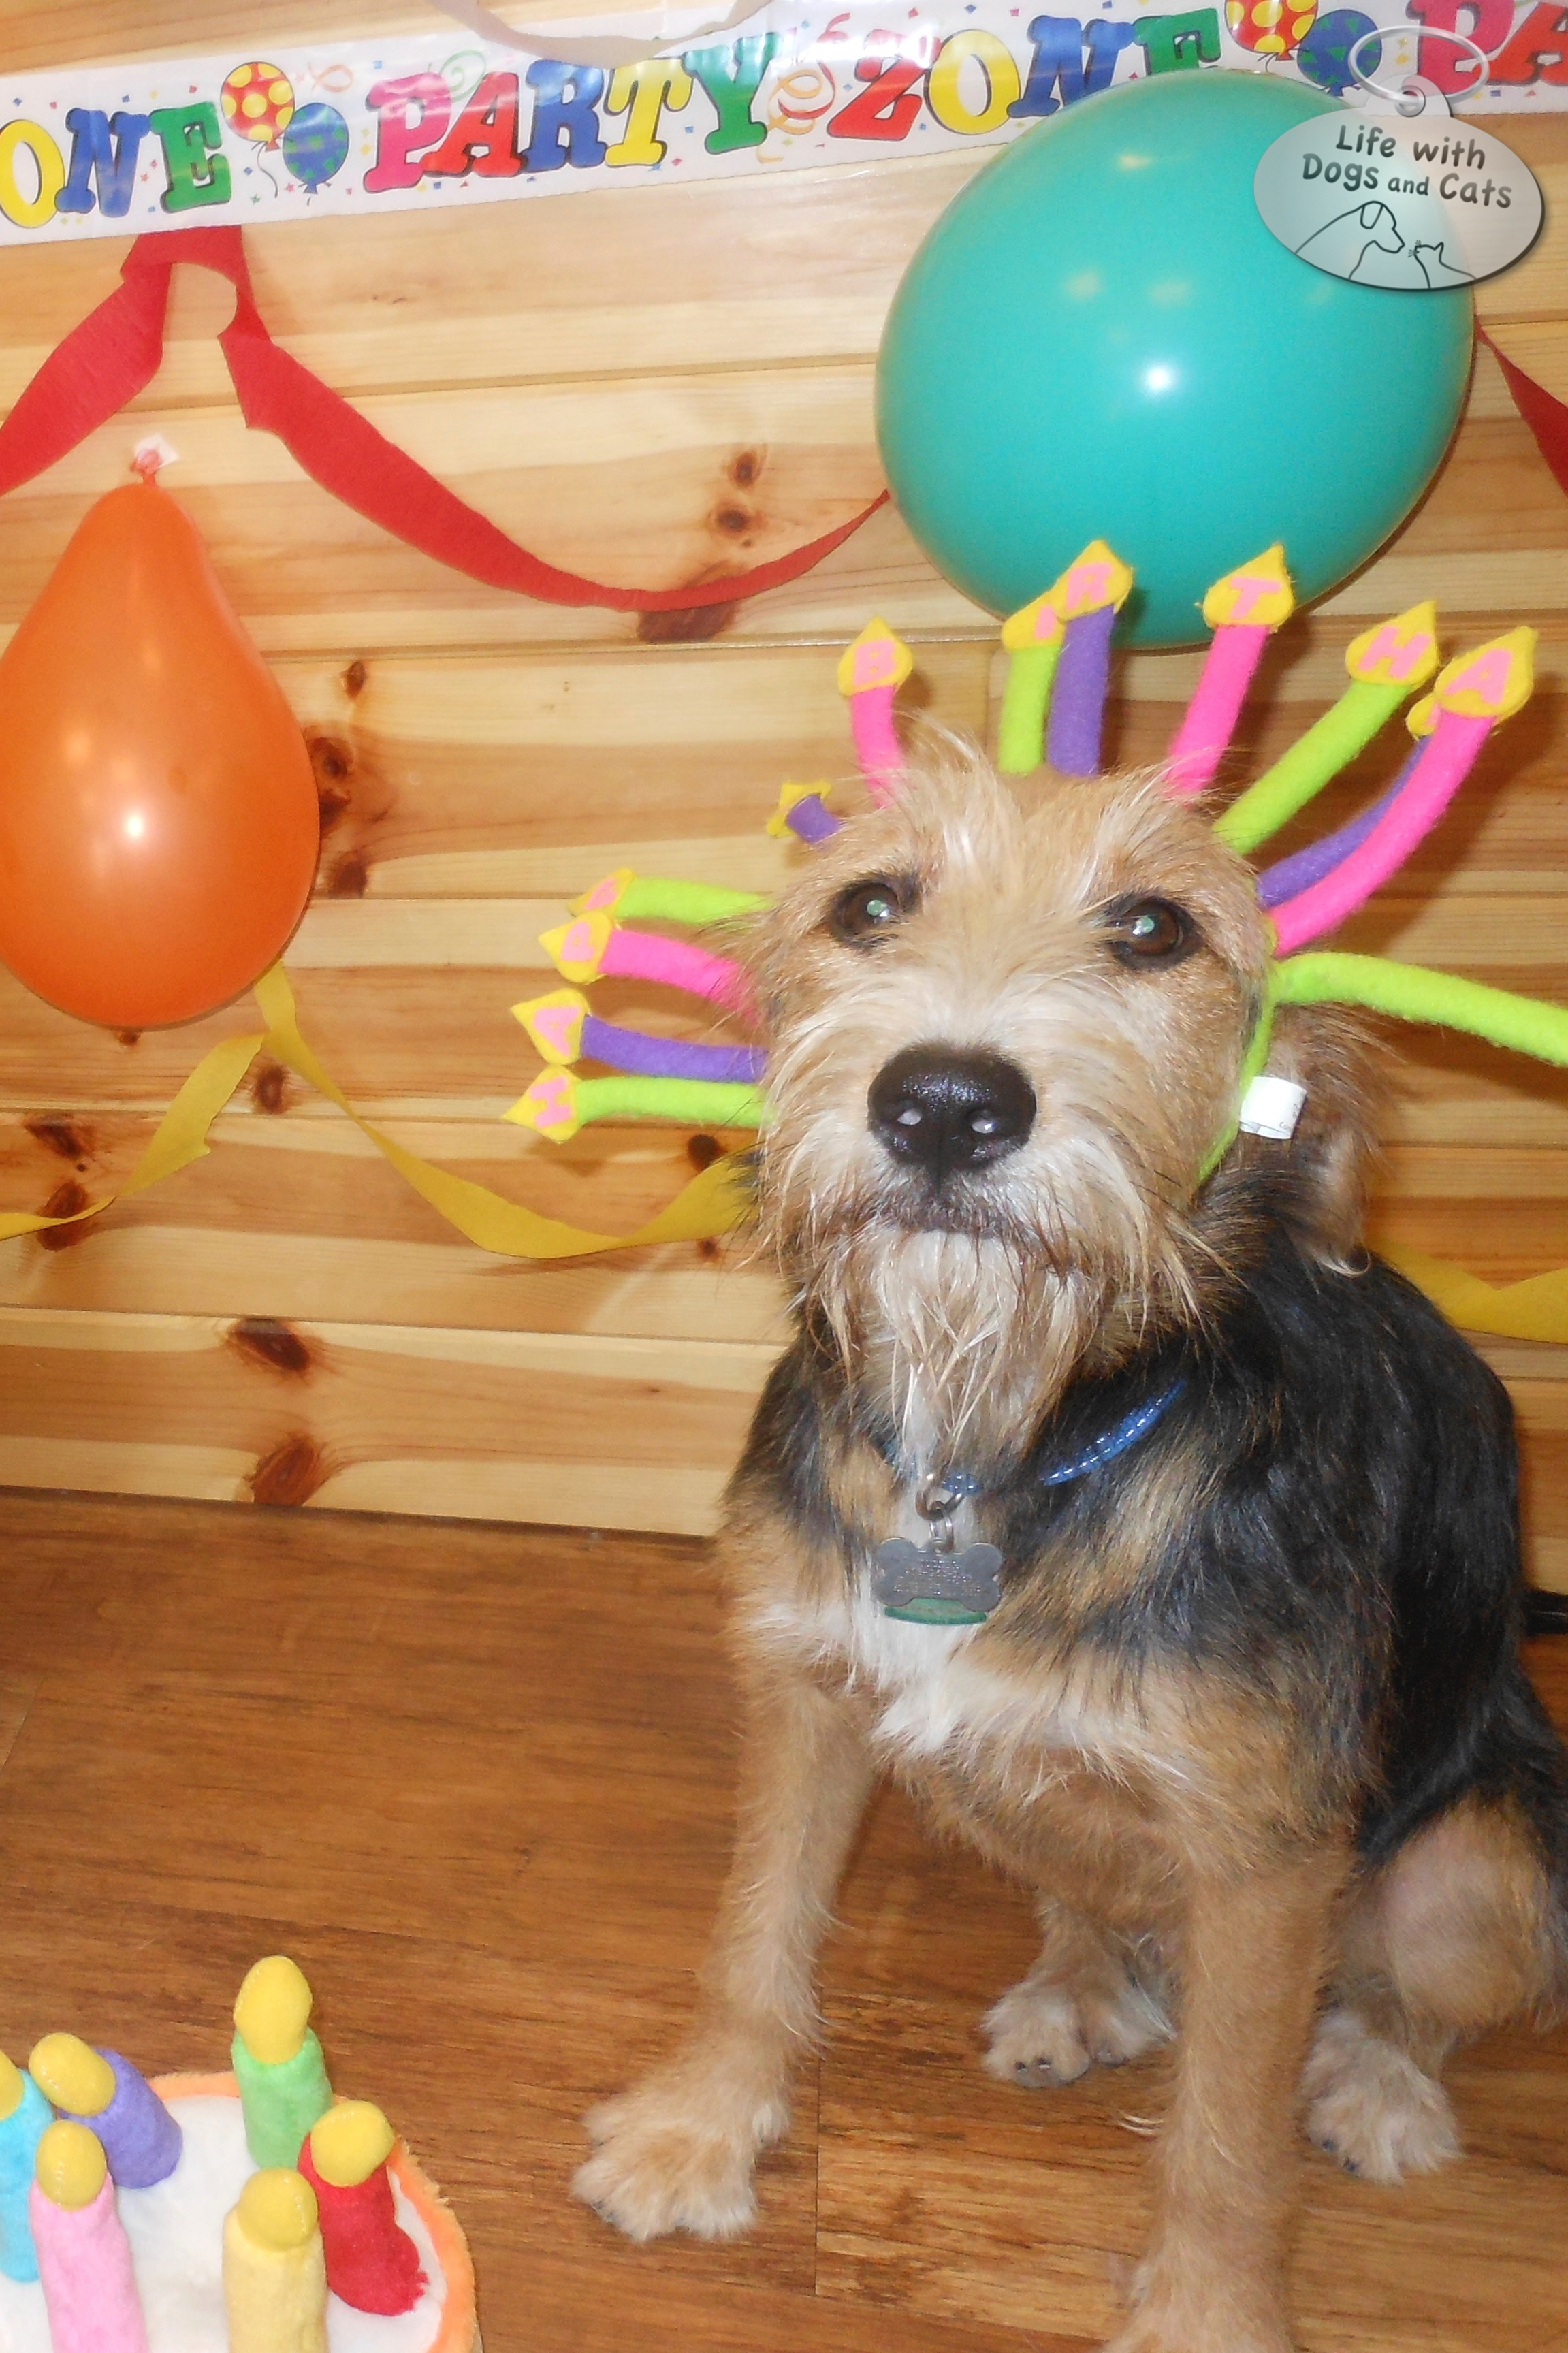 Tucker was invited to join another doggy's birthday party at Camp Bow Wow. He was, truly, a party animal.